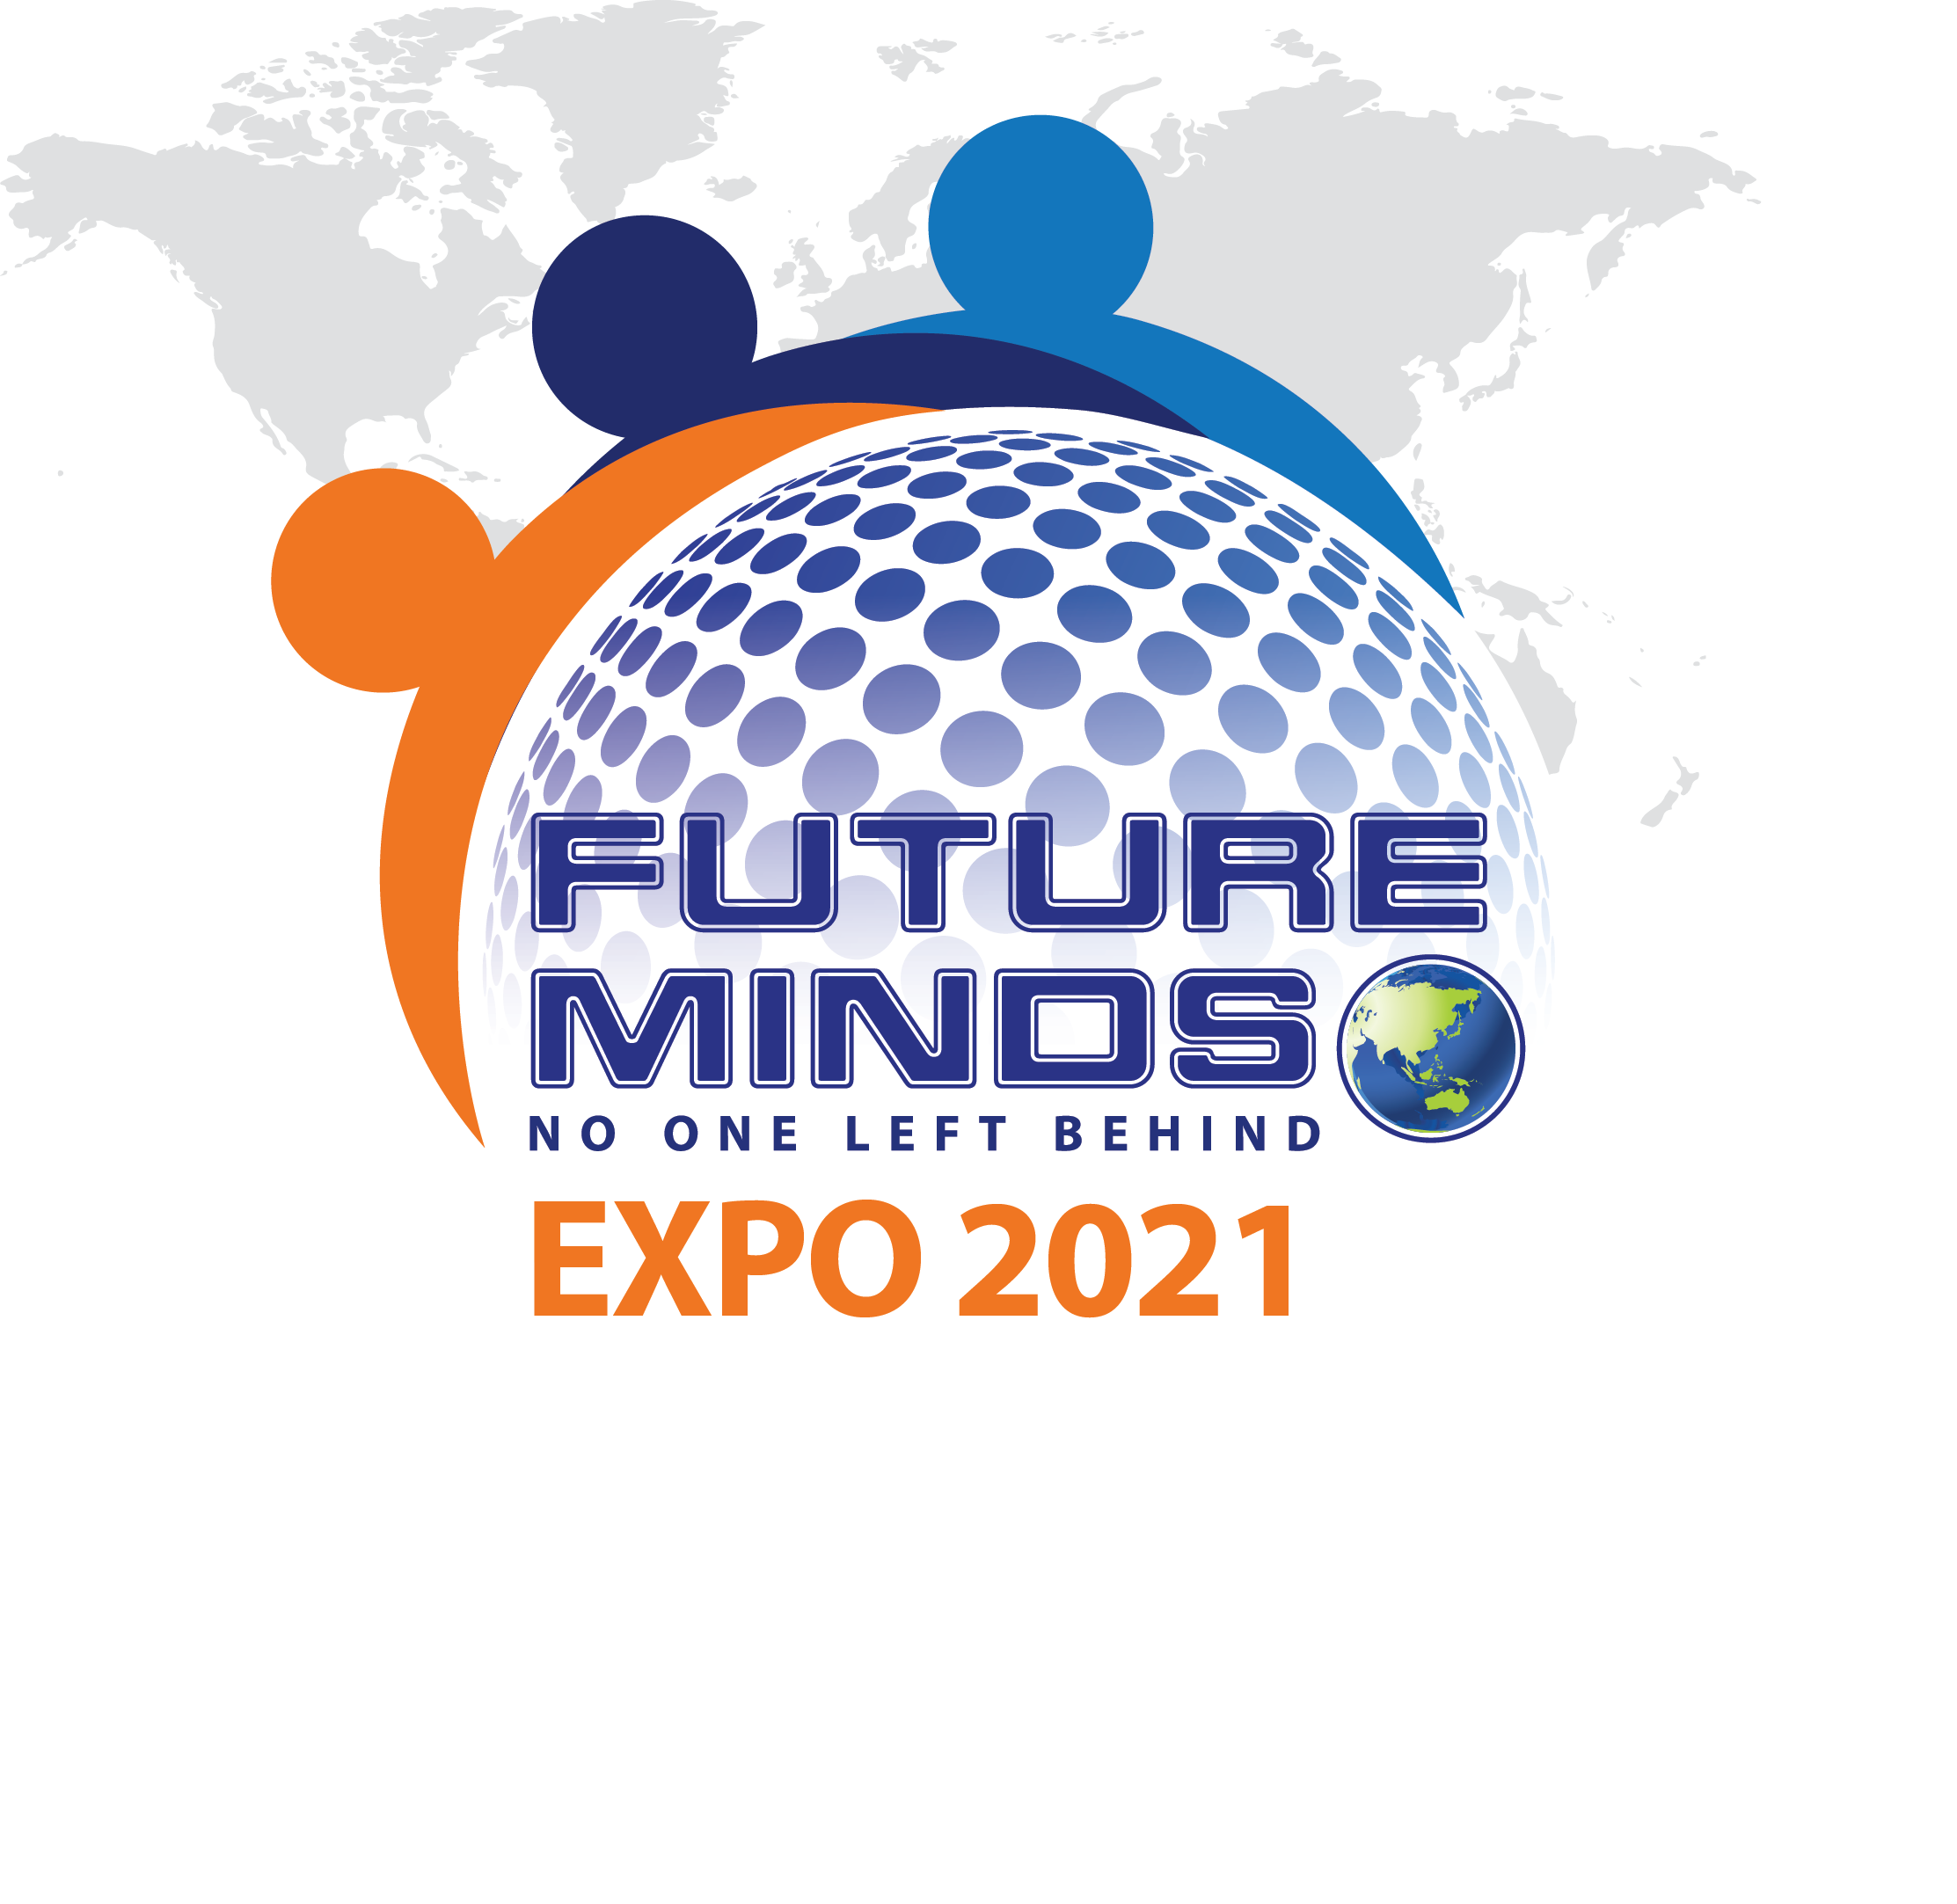 Future Minds - Higher Education Exhibition in Sri Lanka